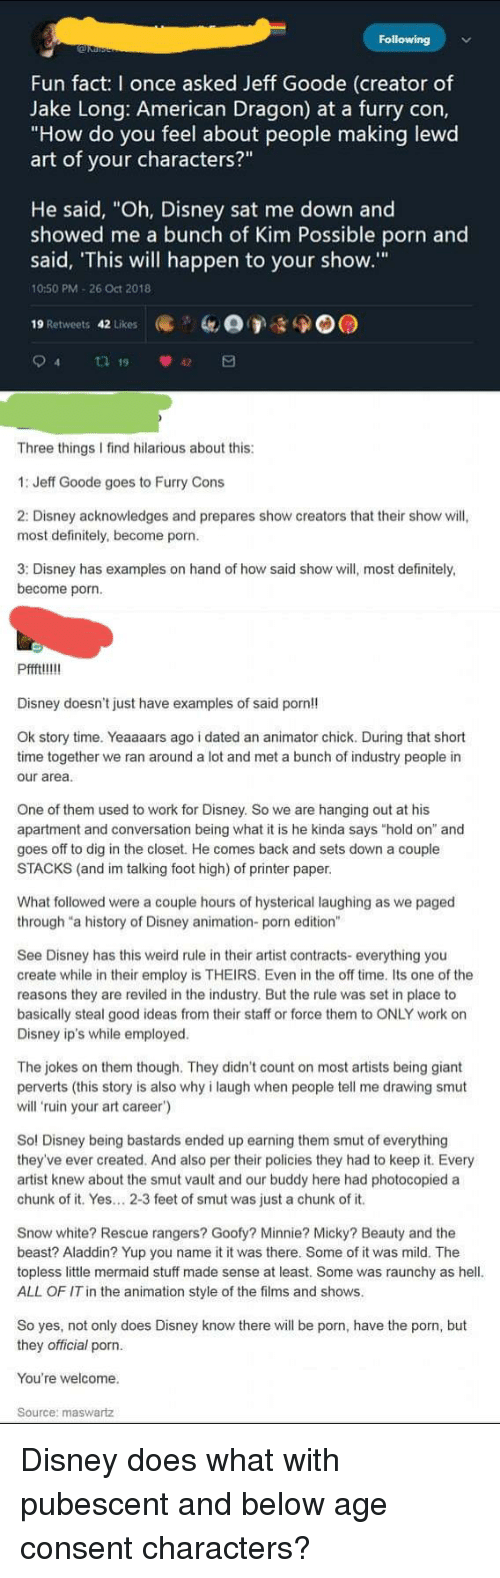 """Aladdin, Definitely, and Disney: Fun fact: I once asked Jeff Goode (creator of  Jake Long: American Dragon) at a furry con,  """"How do you feel about people making lewd  art of your characters?""""  He said, """"Oh, Disney sat me down and  showed me a bunch of Kim Possible porn and  said, This will happen to your show.""""  10:50 PM-26 Oct 2018  19 Retweets 42 Likes  94 19 42日  Three things I find hilarious about this  1: Jeff Goode goes to Furry Cons  2: Disney acknowledges and prepares show creators that their show will,  most definitely, become porn  3: Disney has examples on hand of how said show will, most definitely,  become porn  Pffftl!!  Disney doesn't just have examples of said porn!!  Ok story time. Yeaaaars ago i dated an animator chick. During that short  time together we ran around a lot and met a bunch of industry people in  our area  One of them used to work for Disney. So we are hanging out at his  apartment and conversation being what it is he kinda says """"hold on"""" and  goes off to dig in the closet. He comes back and sets down a couple  STACKS (and im talking foot high) of printer paper  What followed were a couple hours of hysterical laughing as we paged  through """"a history of Disney animation- porn edition""""  See Disney has this weird rule in their artist contracts- everything you  create while in their employ is THEIRS. Even in the off time. Its one of the  reasons they are reviled in the industry. But the rule was set in place to  basically steal good ideas from their staff or force them to ONLY work on  Disney ip's while employed  The jokes on them though. They didn't count on most artists being giant  perverts (this story is also why i laugh when people tell me drawing smut  will 'ruin your art career')  Sol Disney being bastards ended up earning them smut of everything  they've ever created. And also per their policies they had to keep it. Every  artist knew about the smut vault and our buddy here had photocopied a  chunk of it. Yes.. 2-3 feet of smut w"""